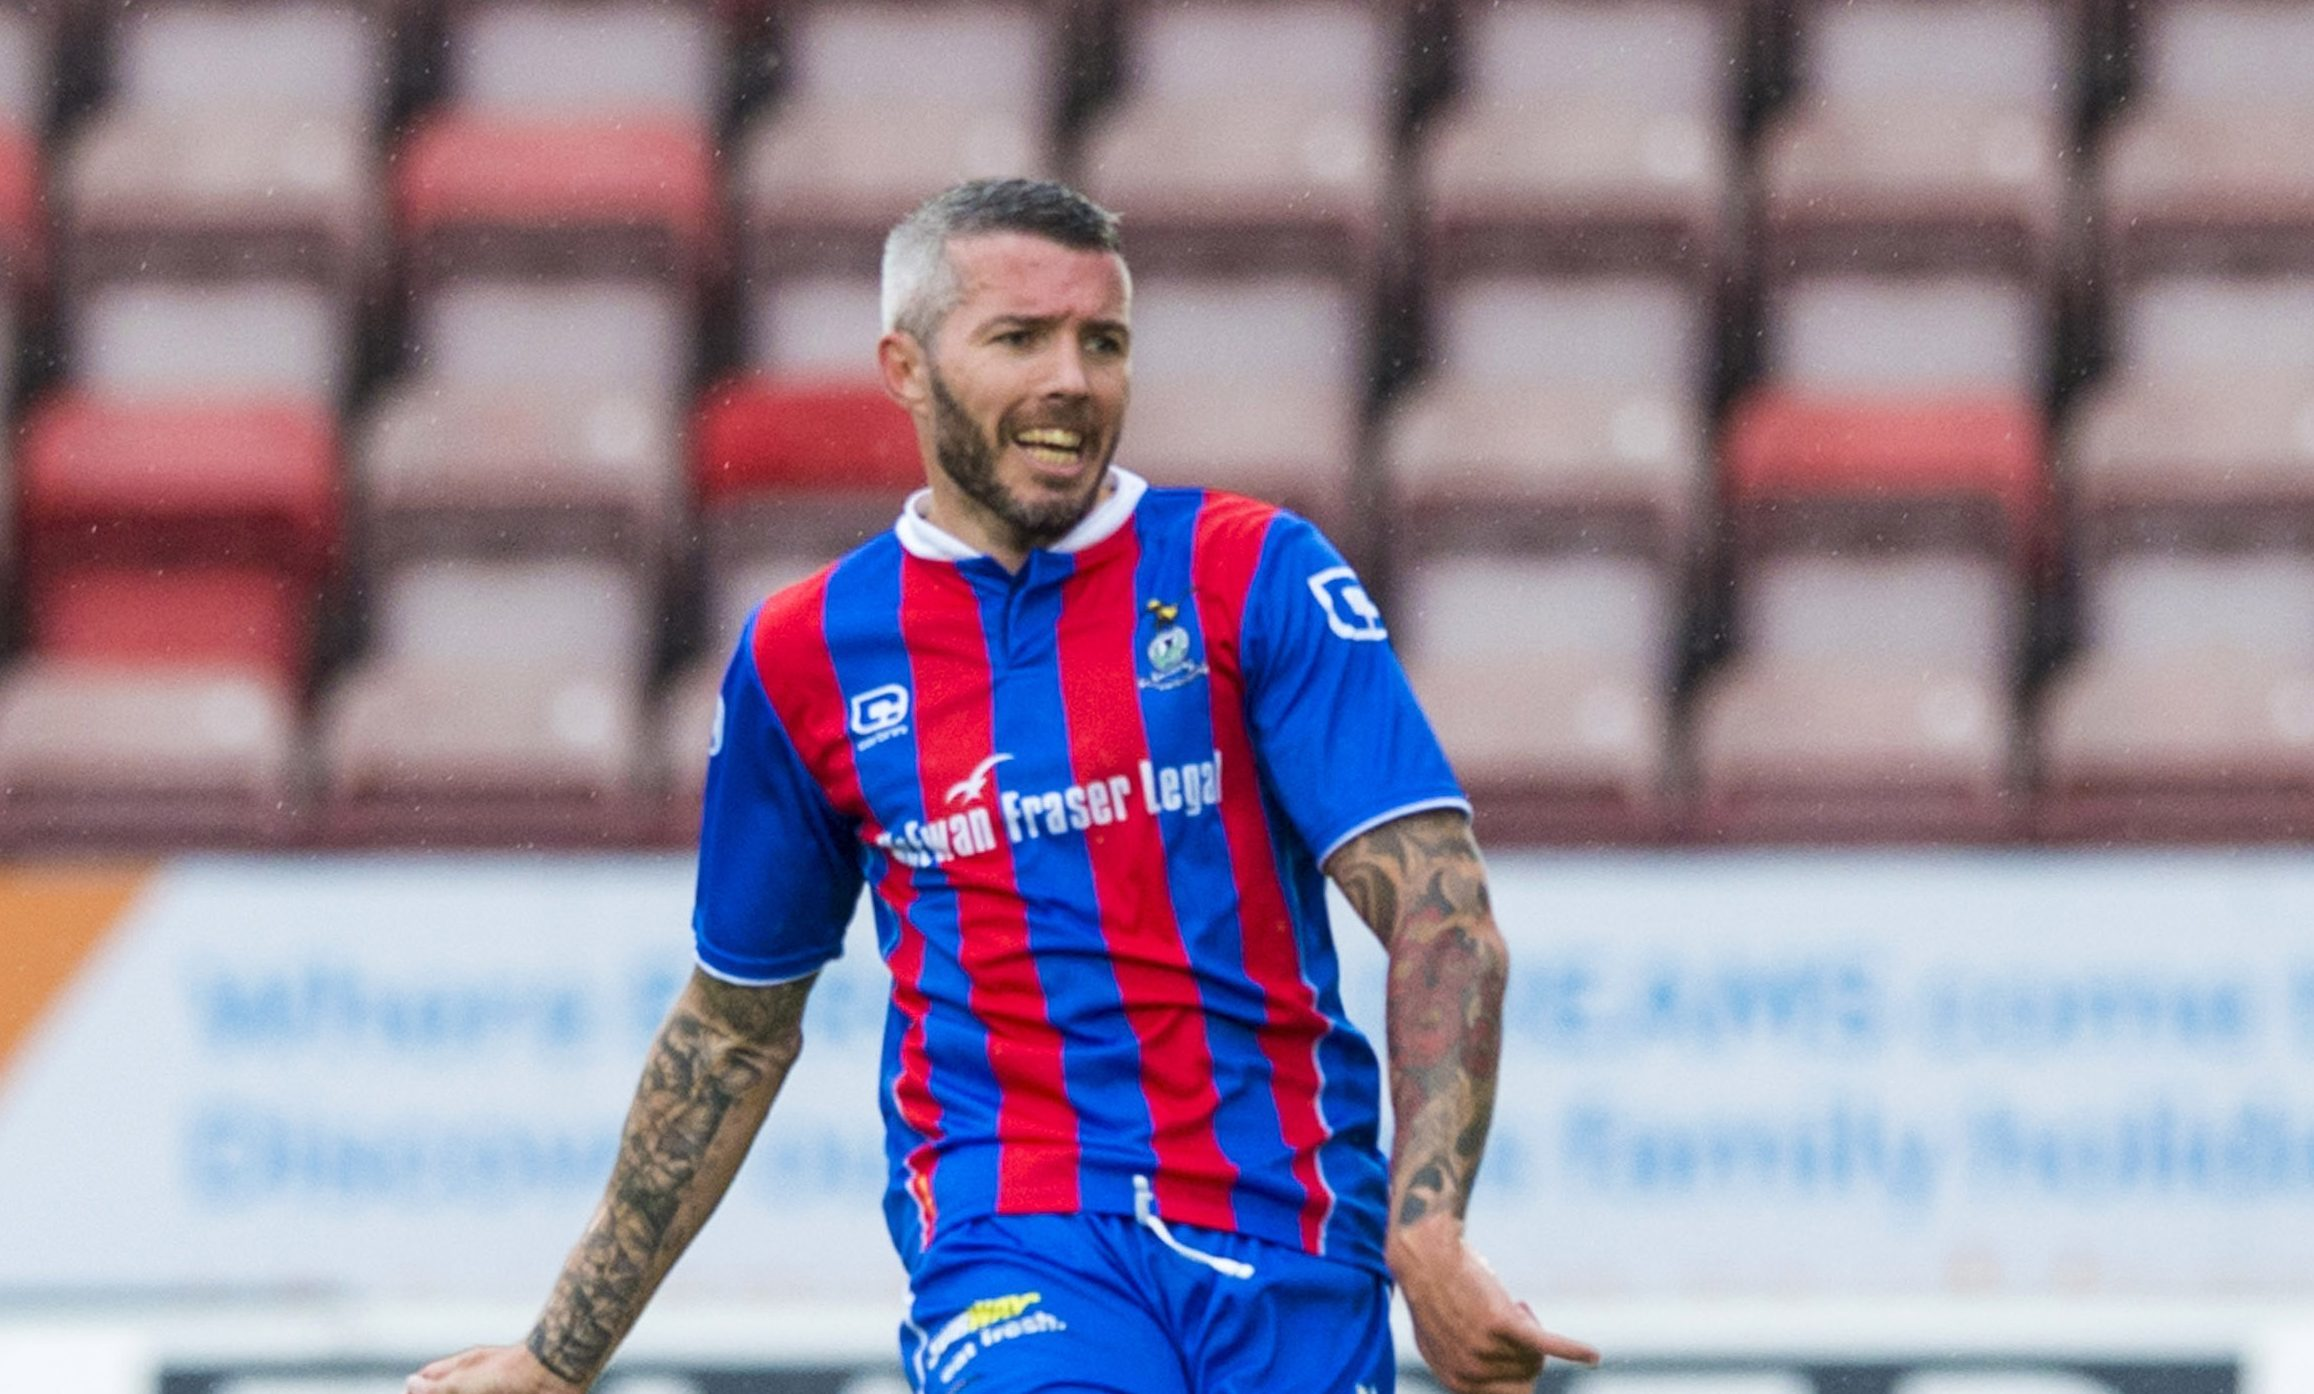 Kevin McNaughton playing for Inverness Caledonian Thistle.